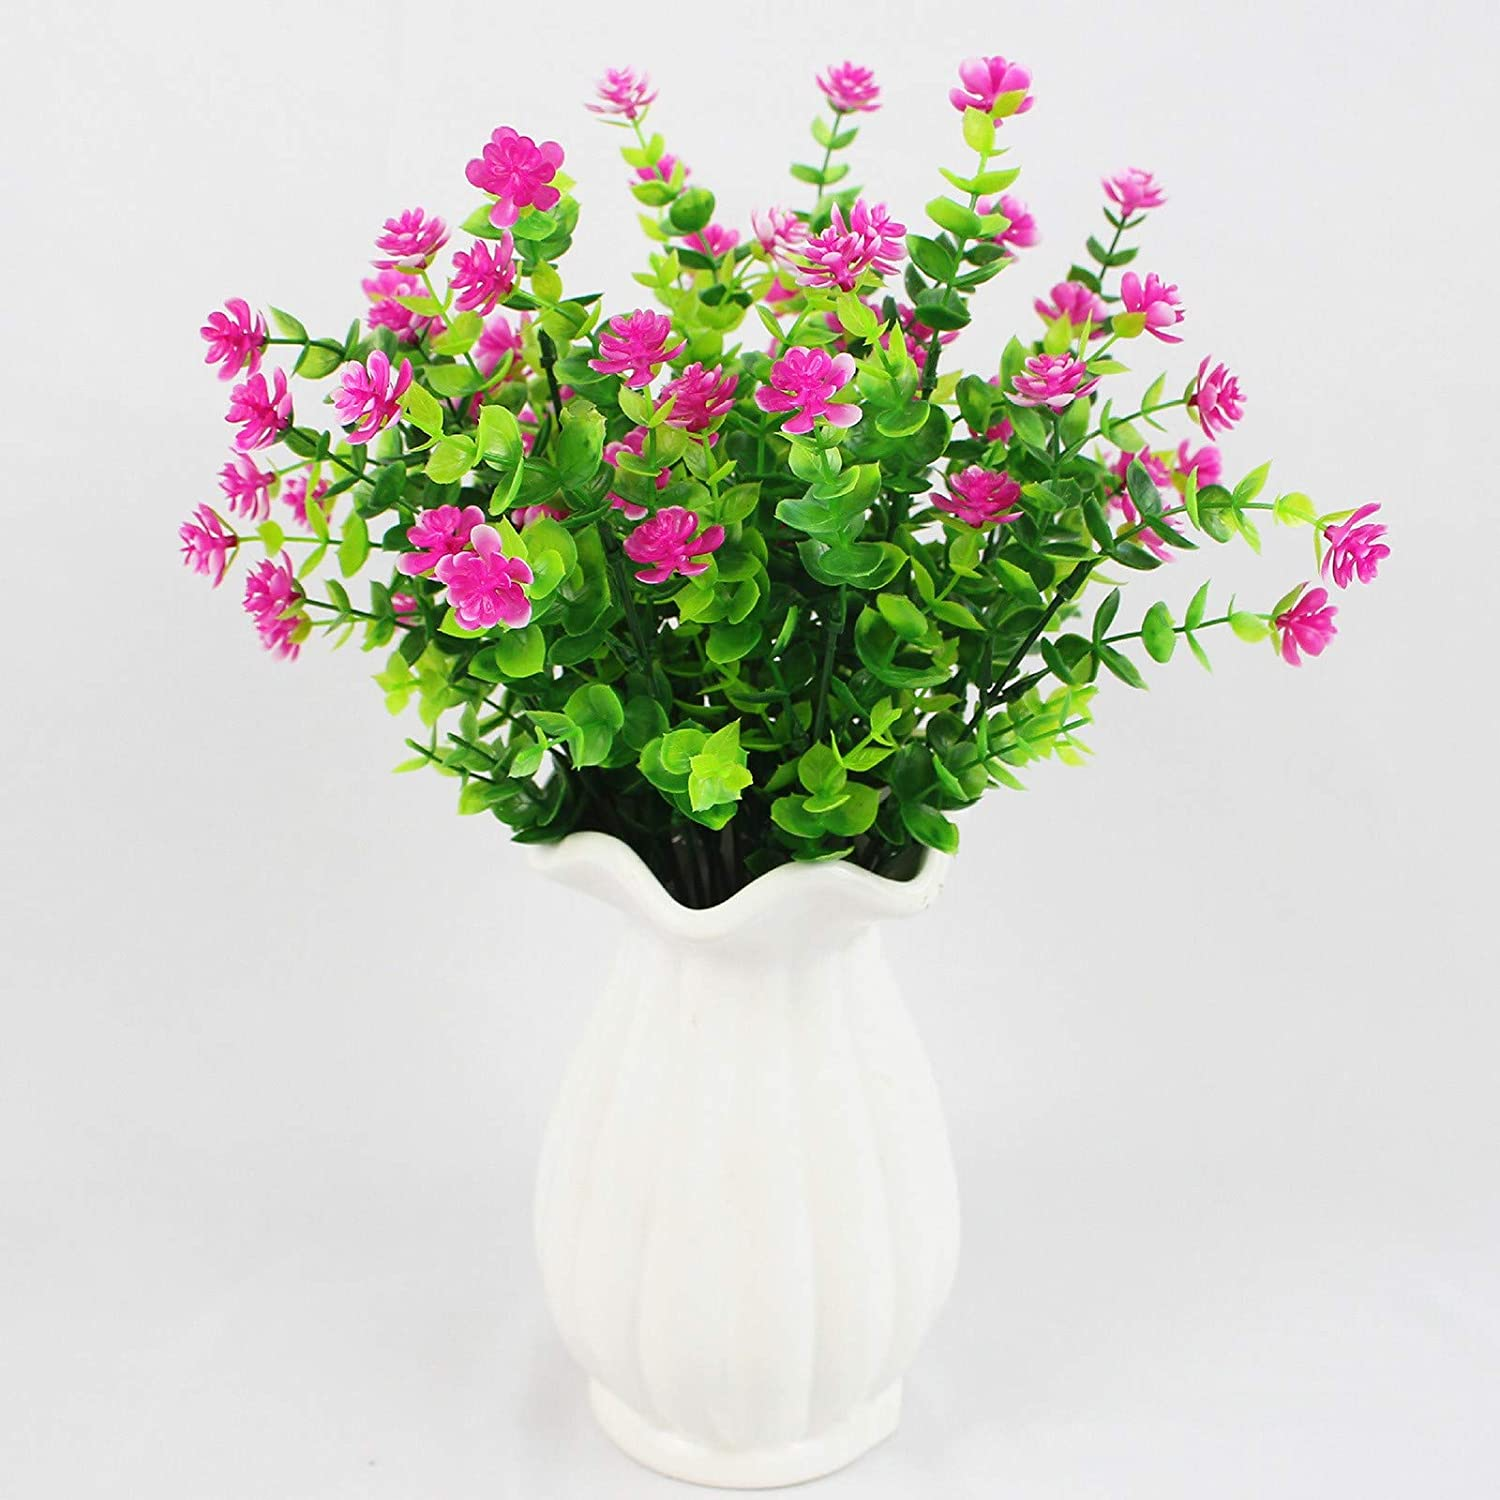 Artificial Plants Outdoor Bulk- Special sale item Resistan UV Fake Flowers Popular products